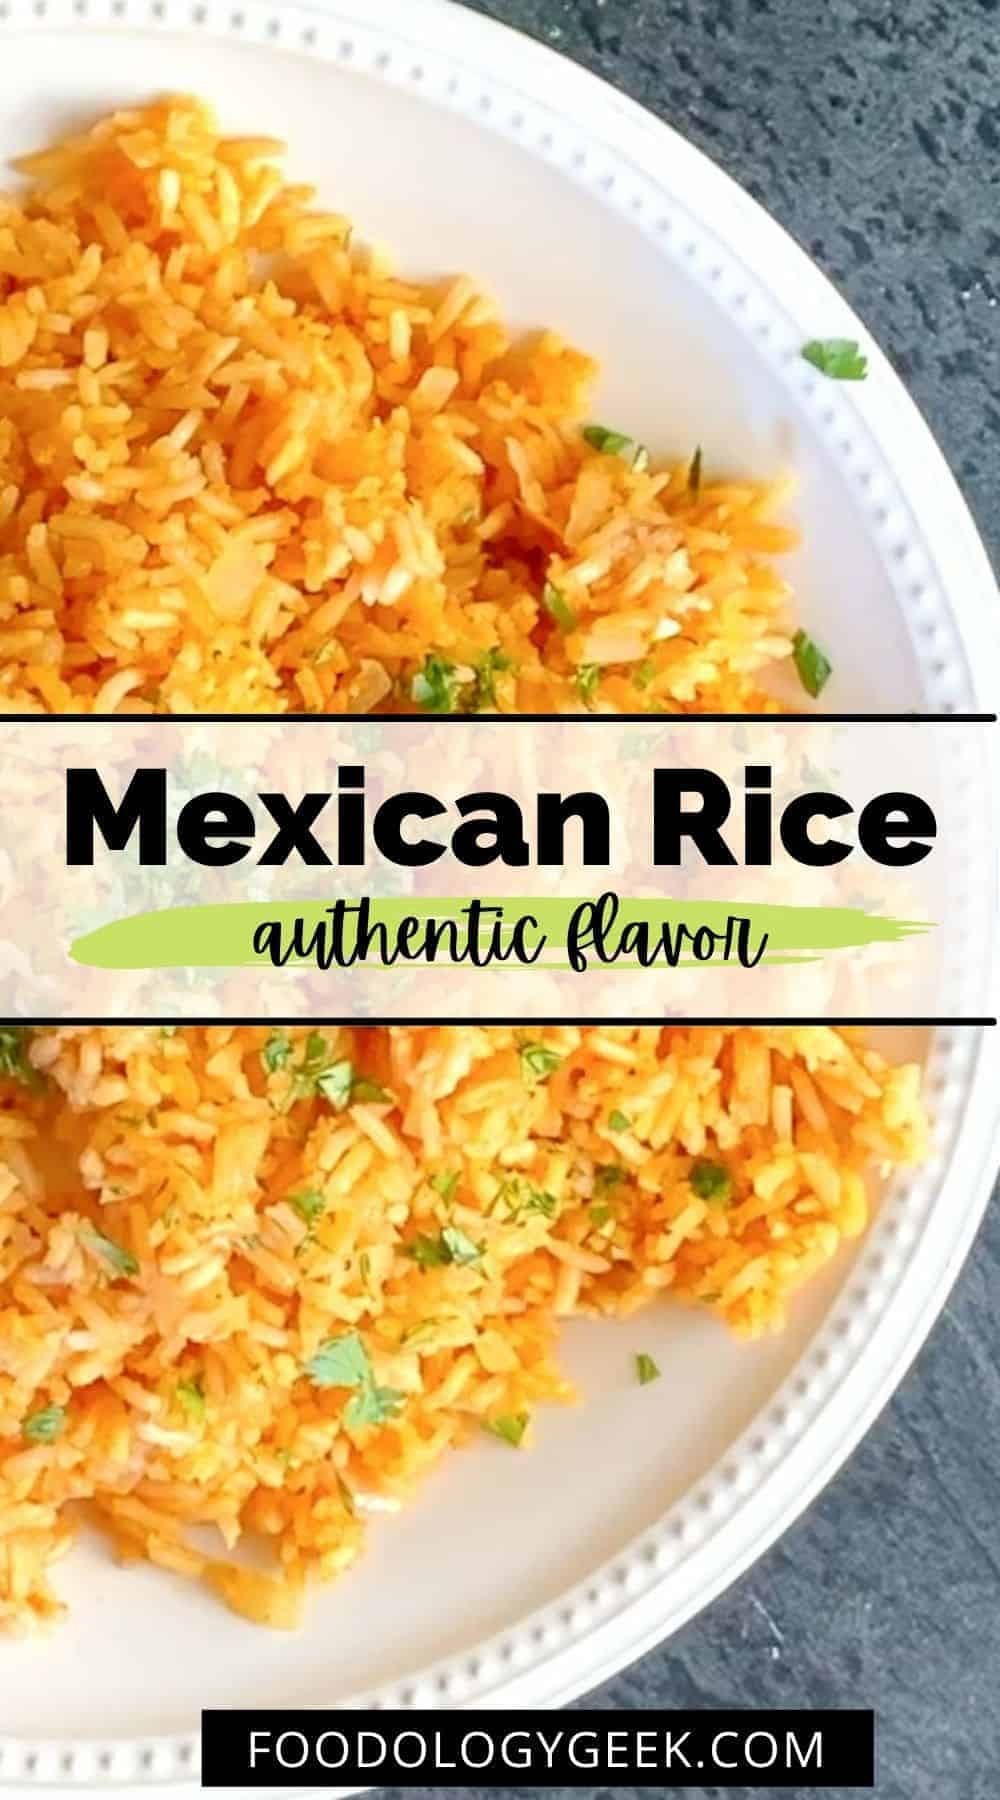 This is truly the best Mexican rice recipe out there. I've tried a bunch and always come back to this one. This delicious rice recipe is fluffy and the perfect side dish taco tuesday!